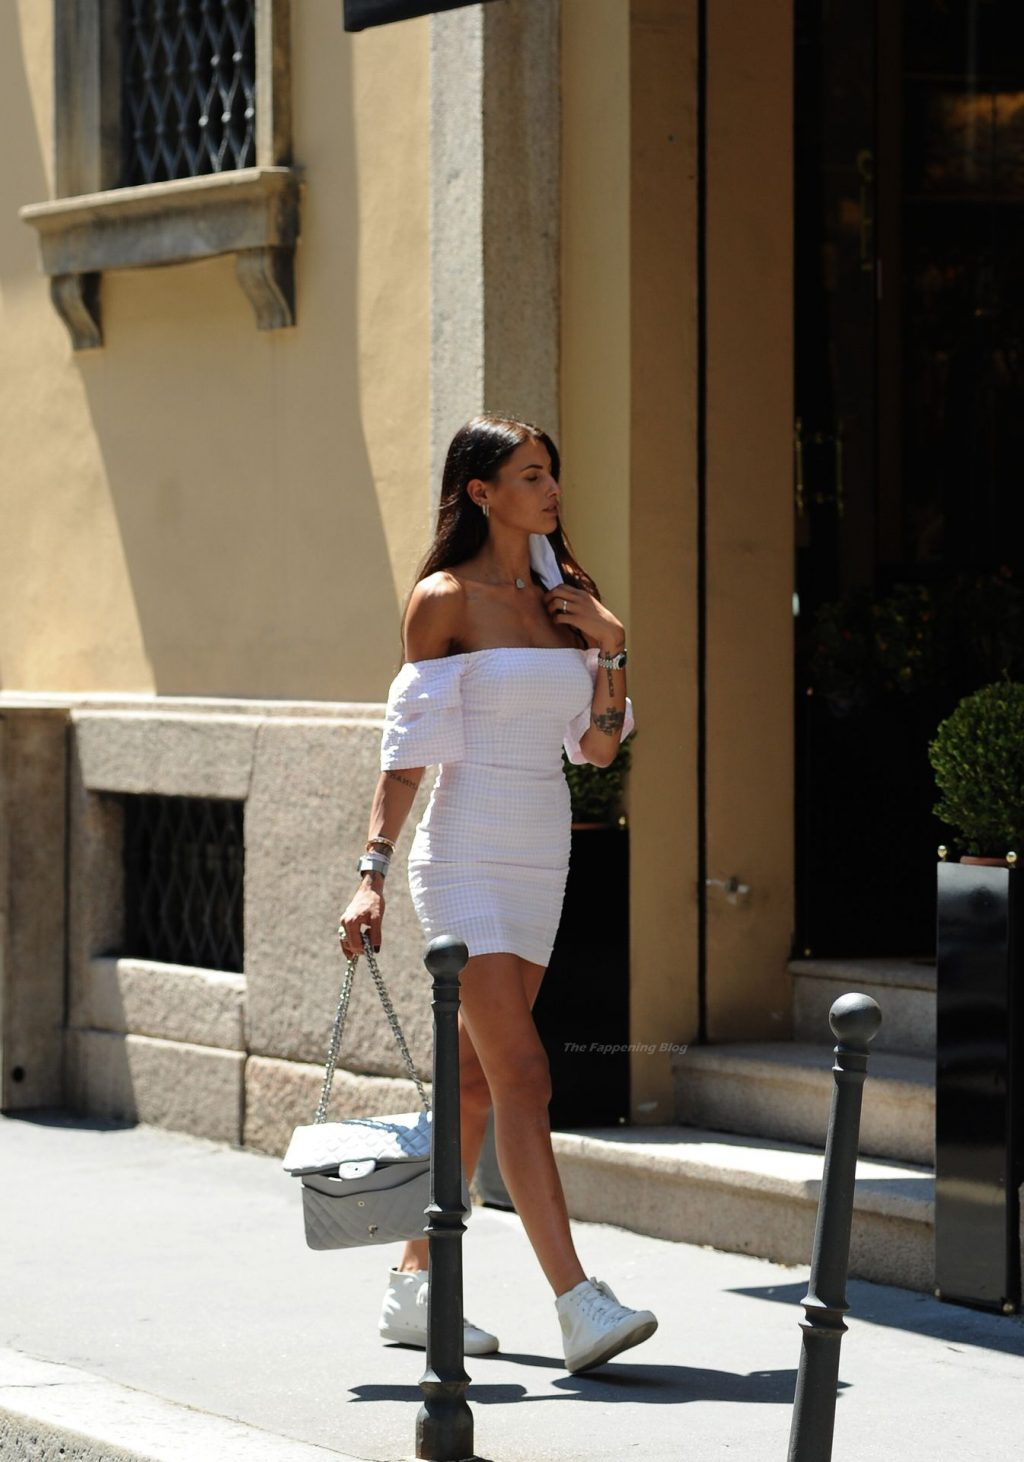 Carolina Stramare Turns a Few Heads as She Goes to Lunch in a Restaurant of Milan (38 Photos)